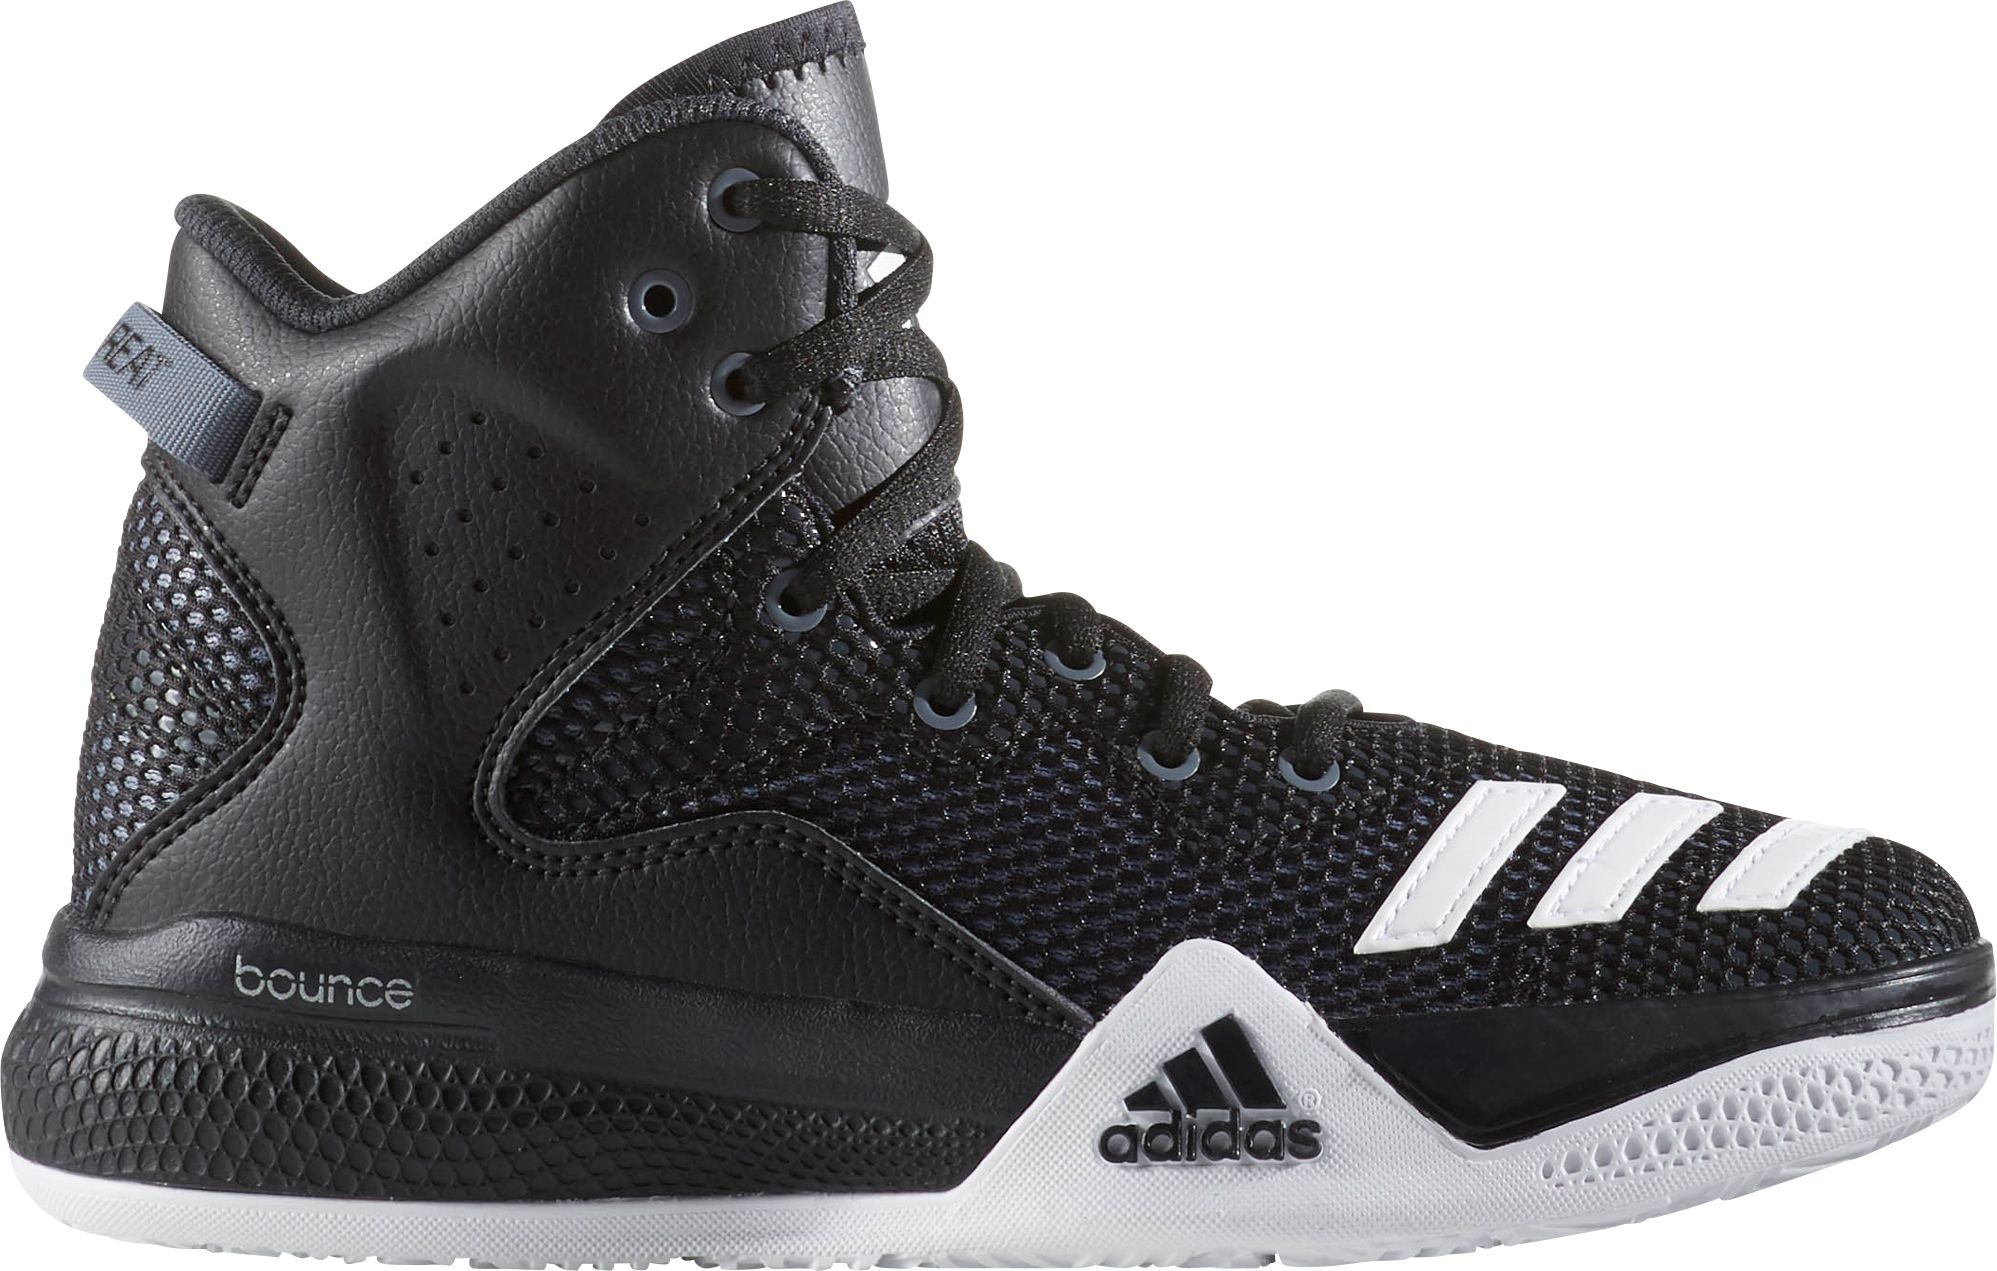 adidas menu0027s dual threat basketball shoes TXILTFQ